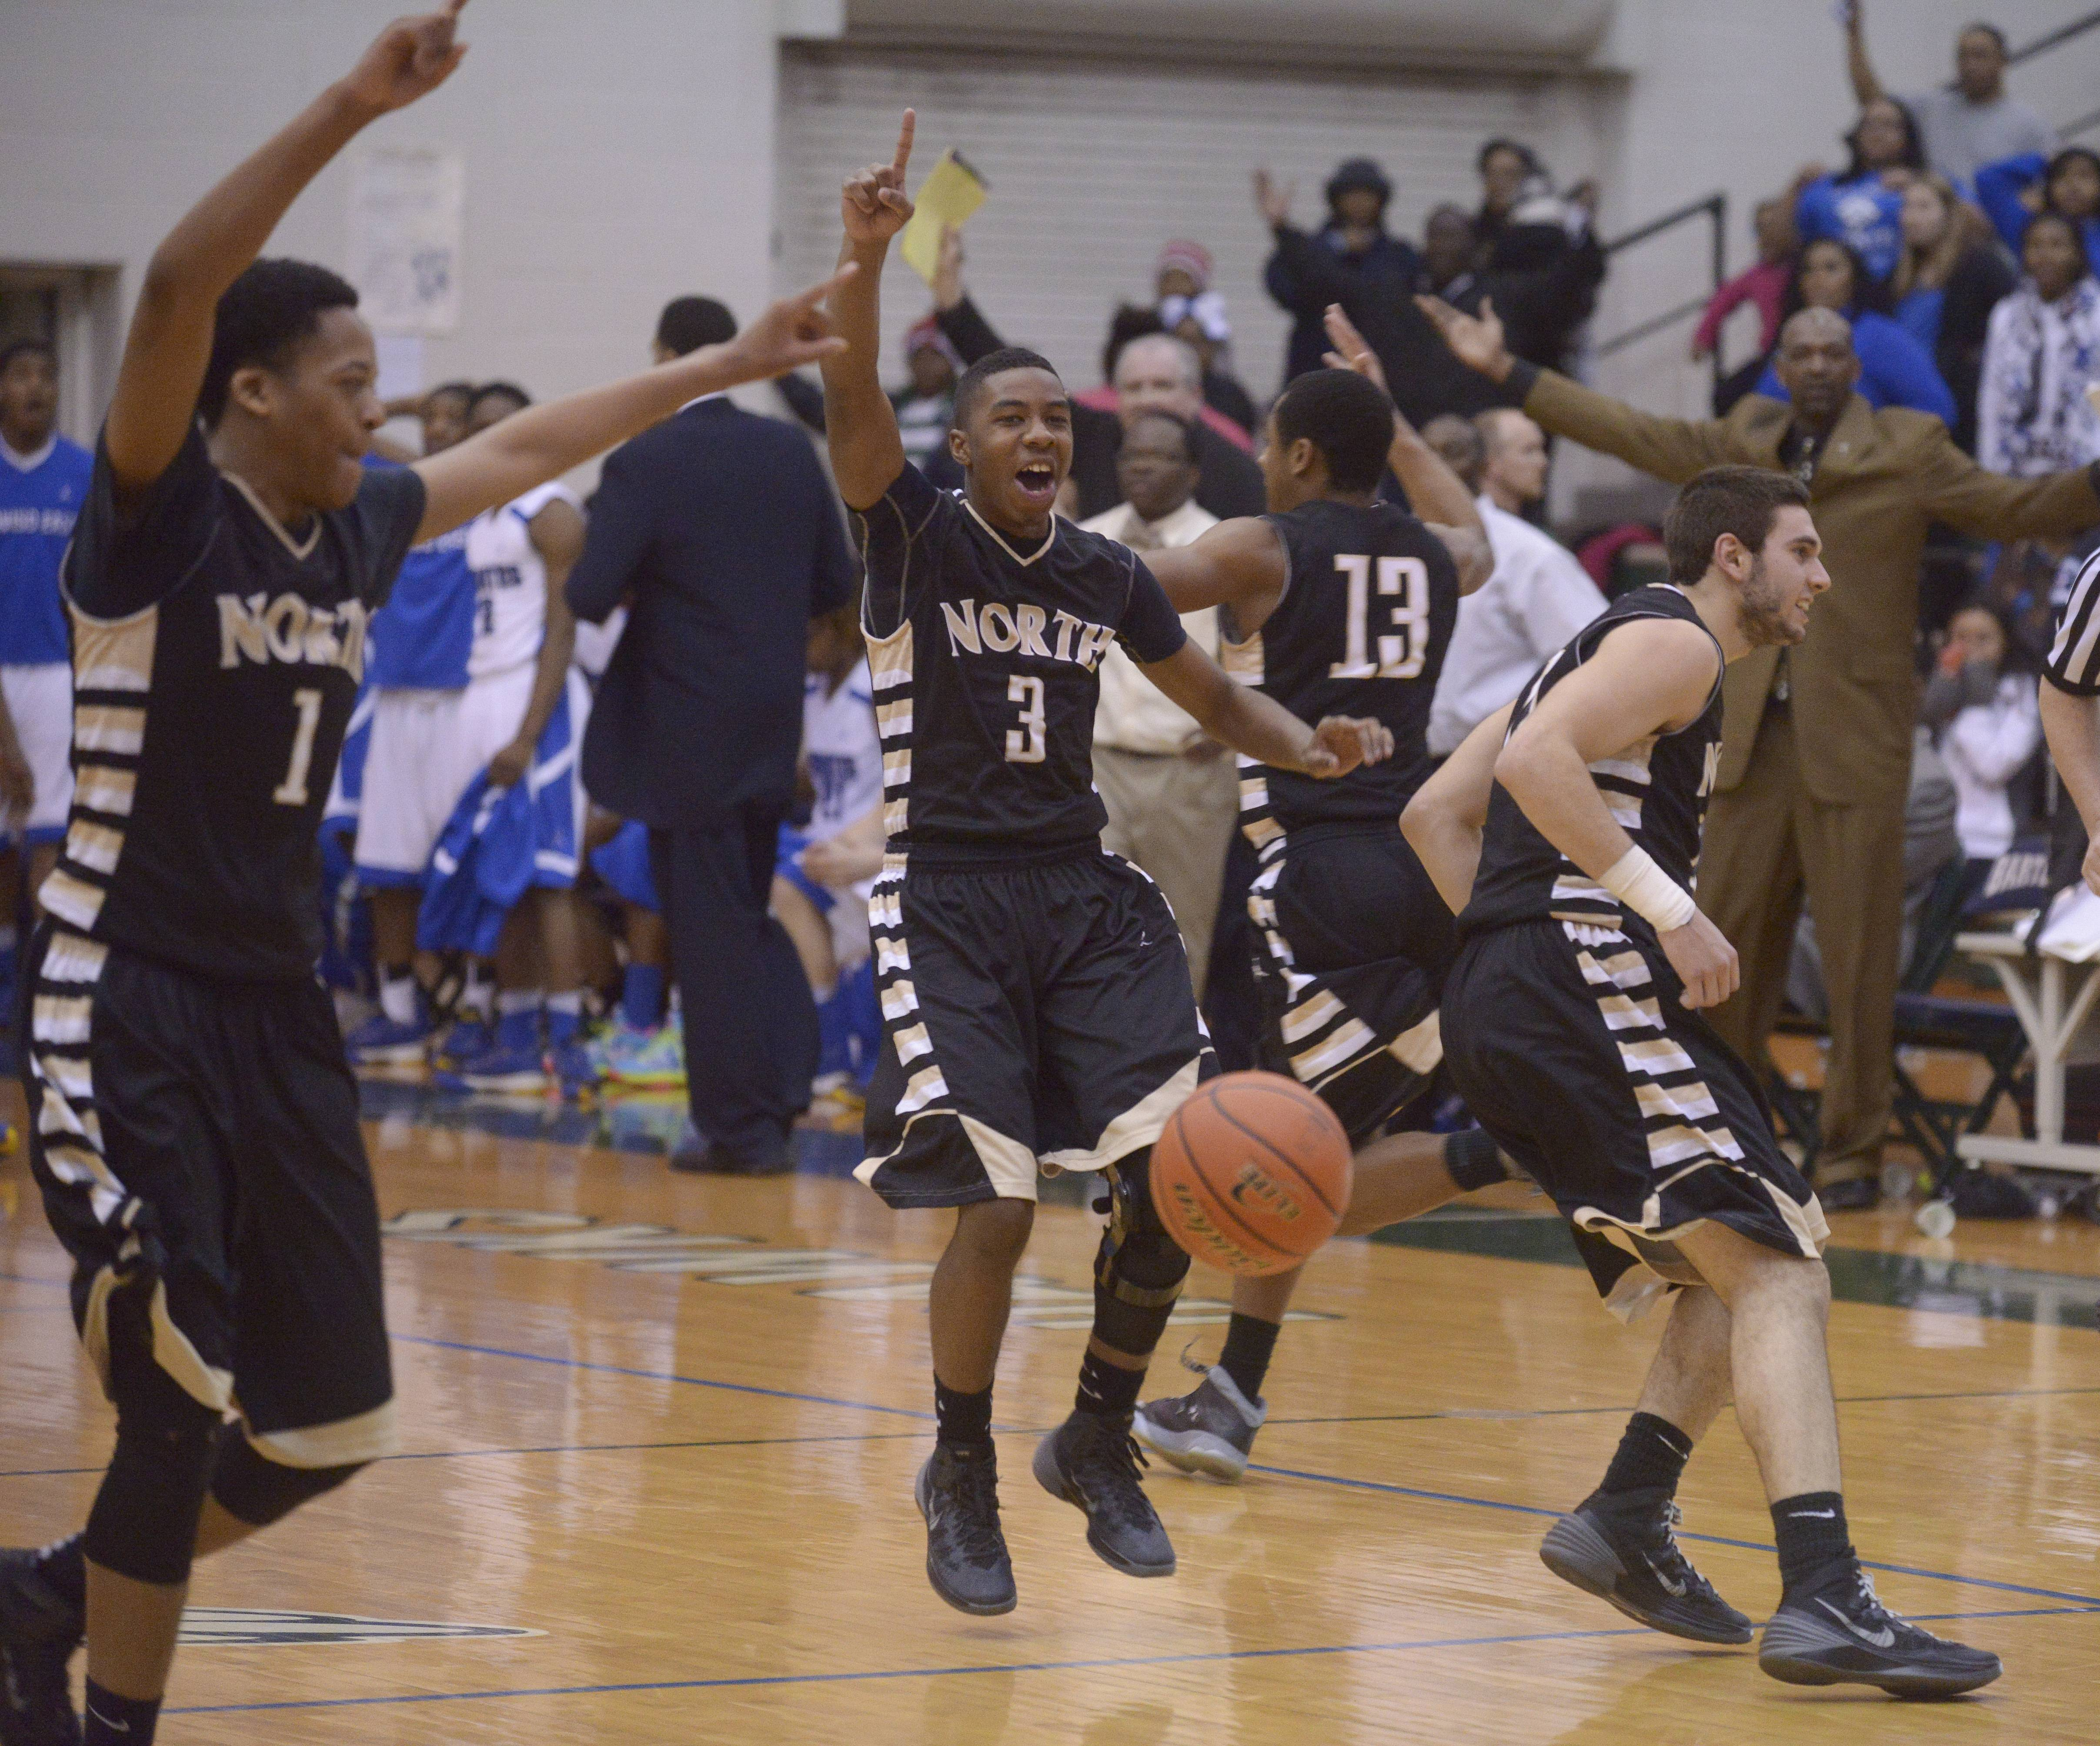 Images: Glenbard North vs. Proviso East boys basketball